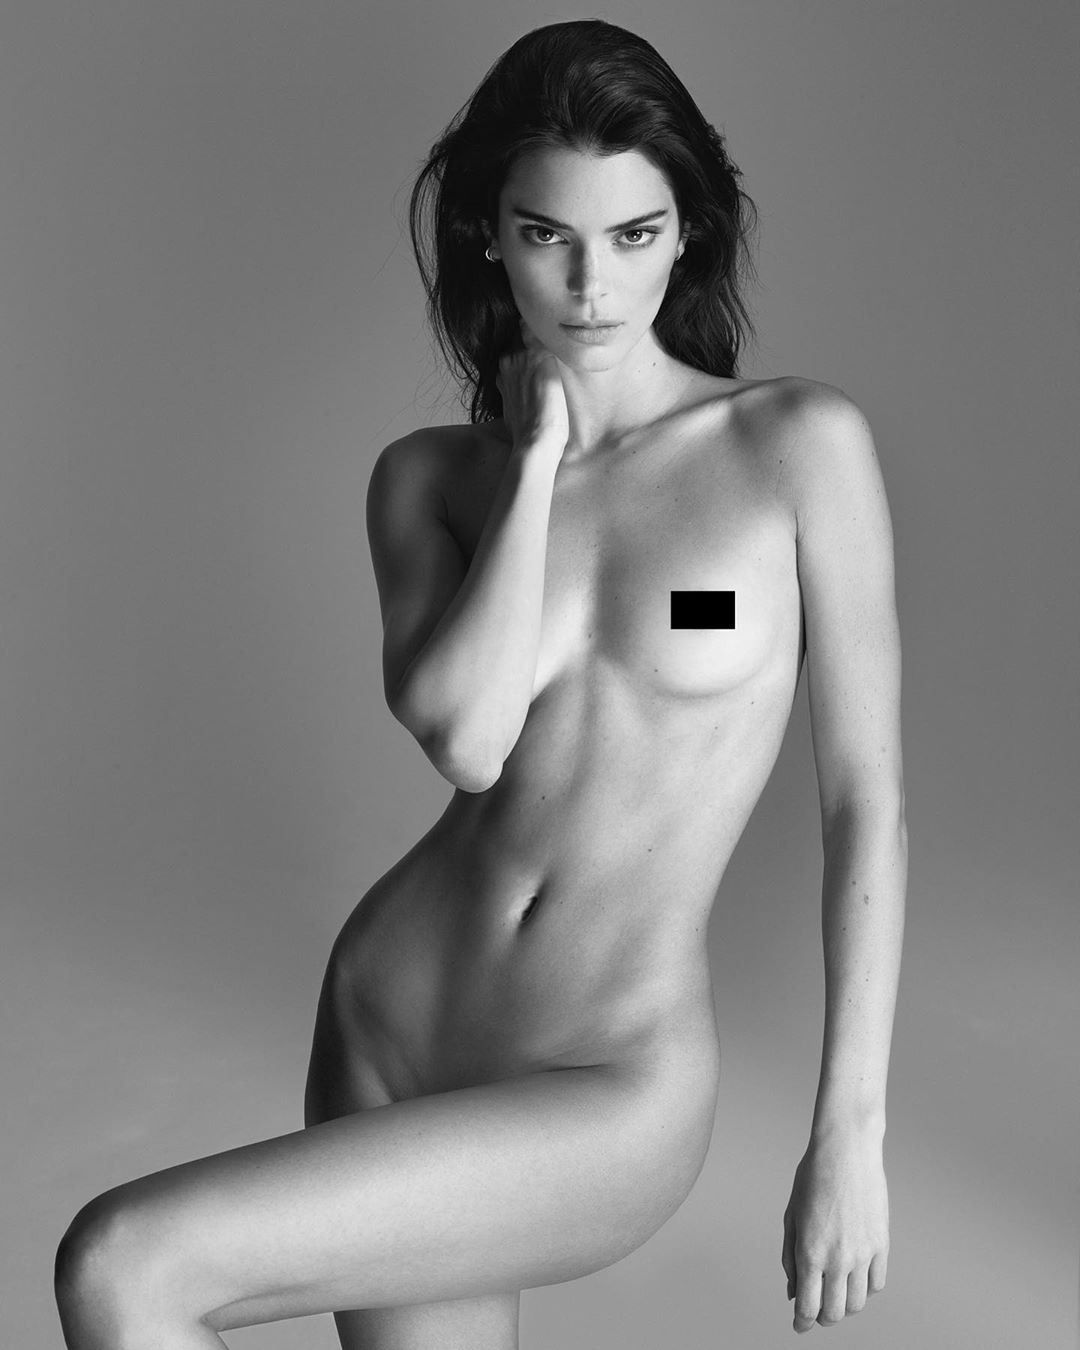 Kendall Jenner poses nude for Mert Alas